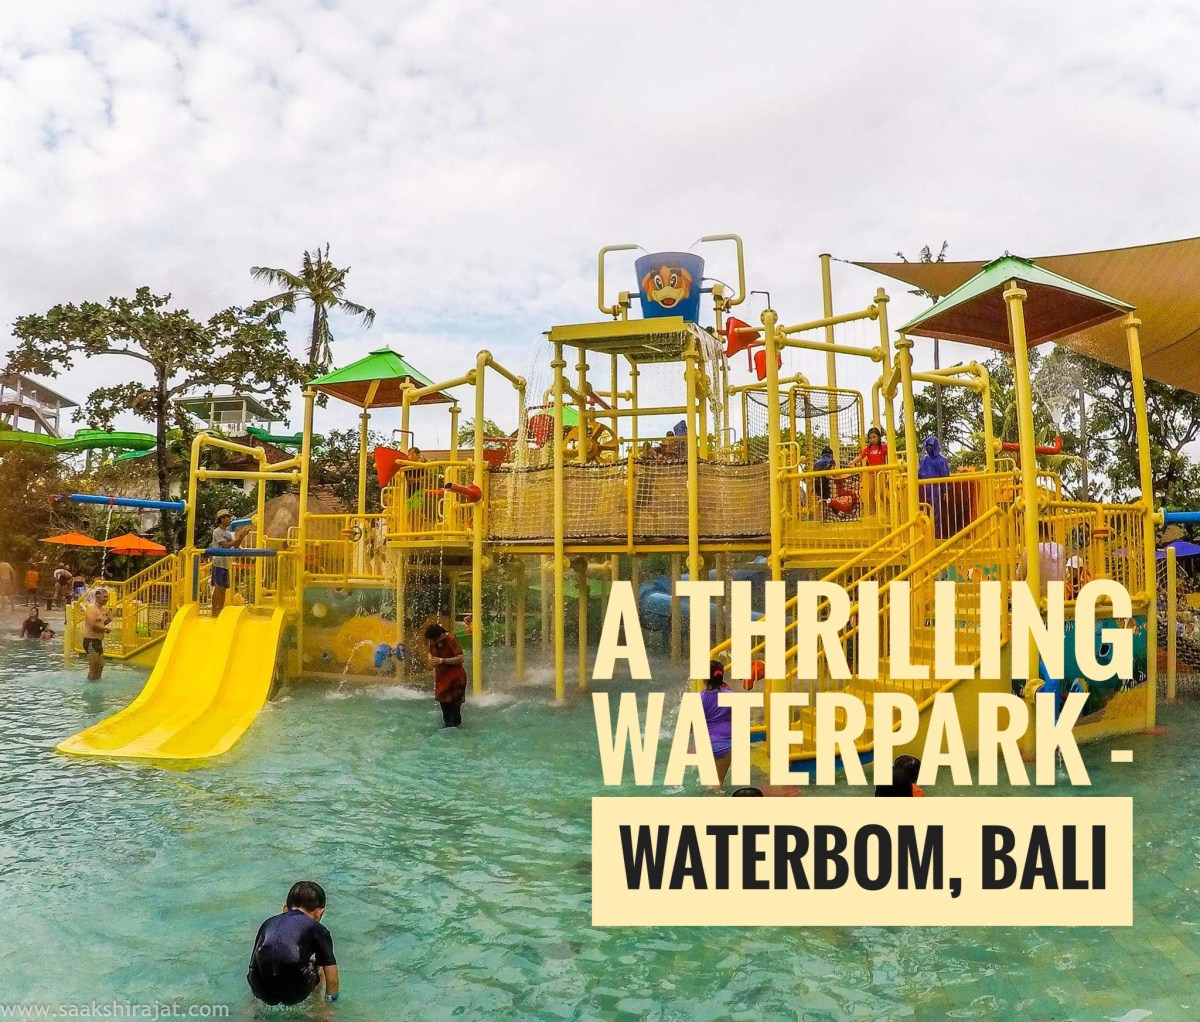 Waterbom Bali - A thrilling waterpark experience